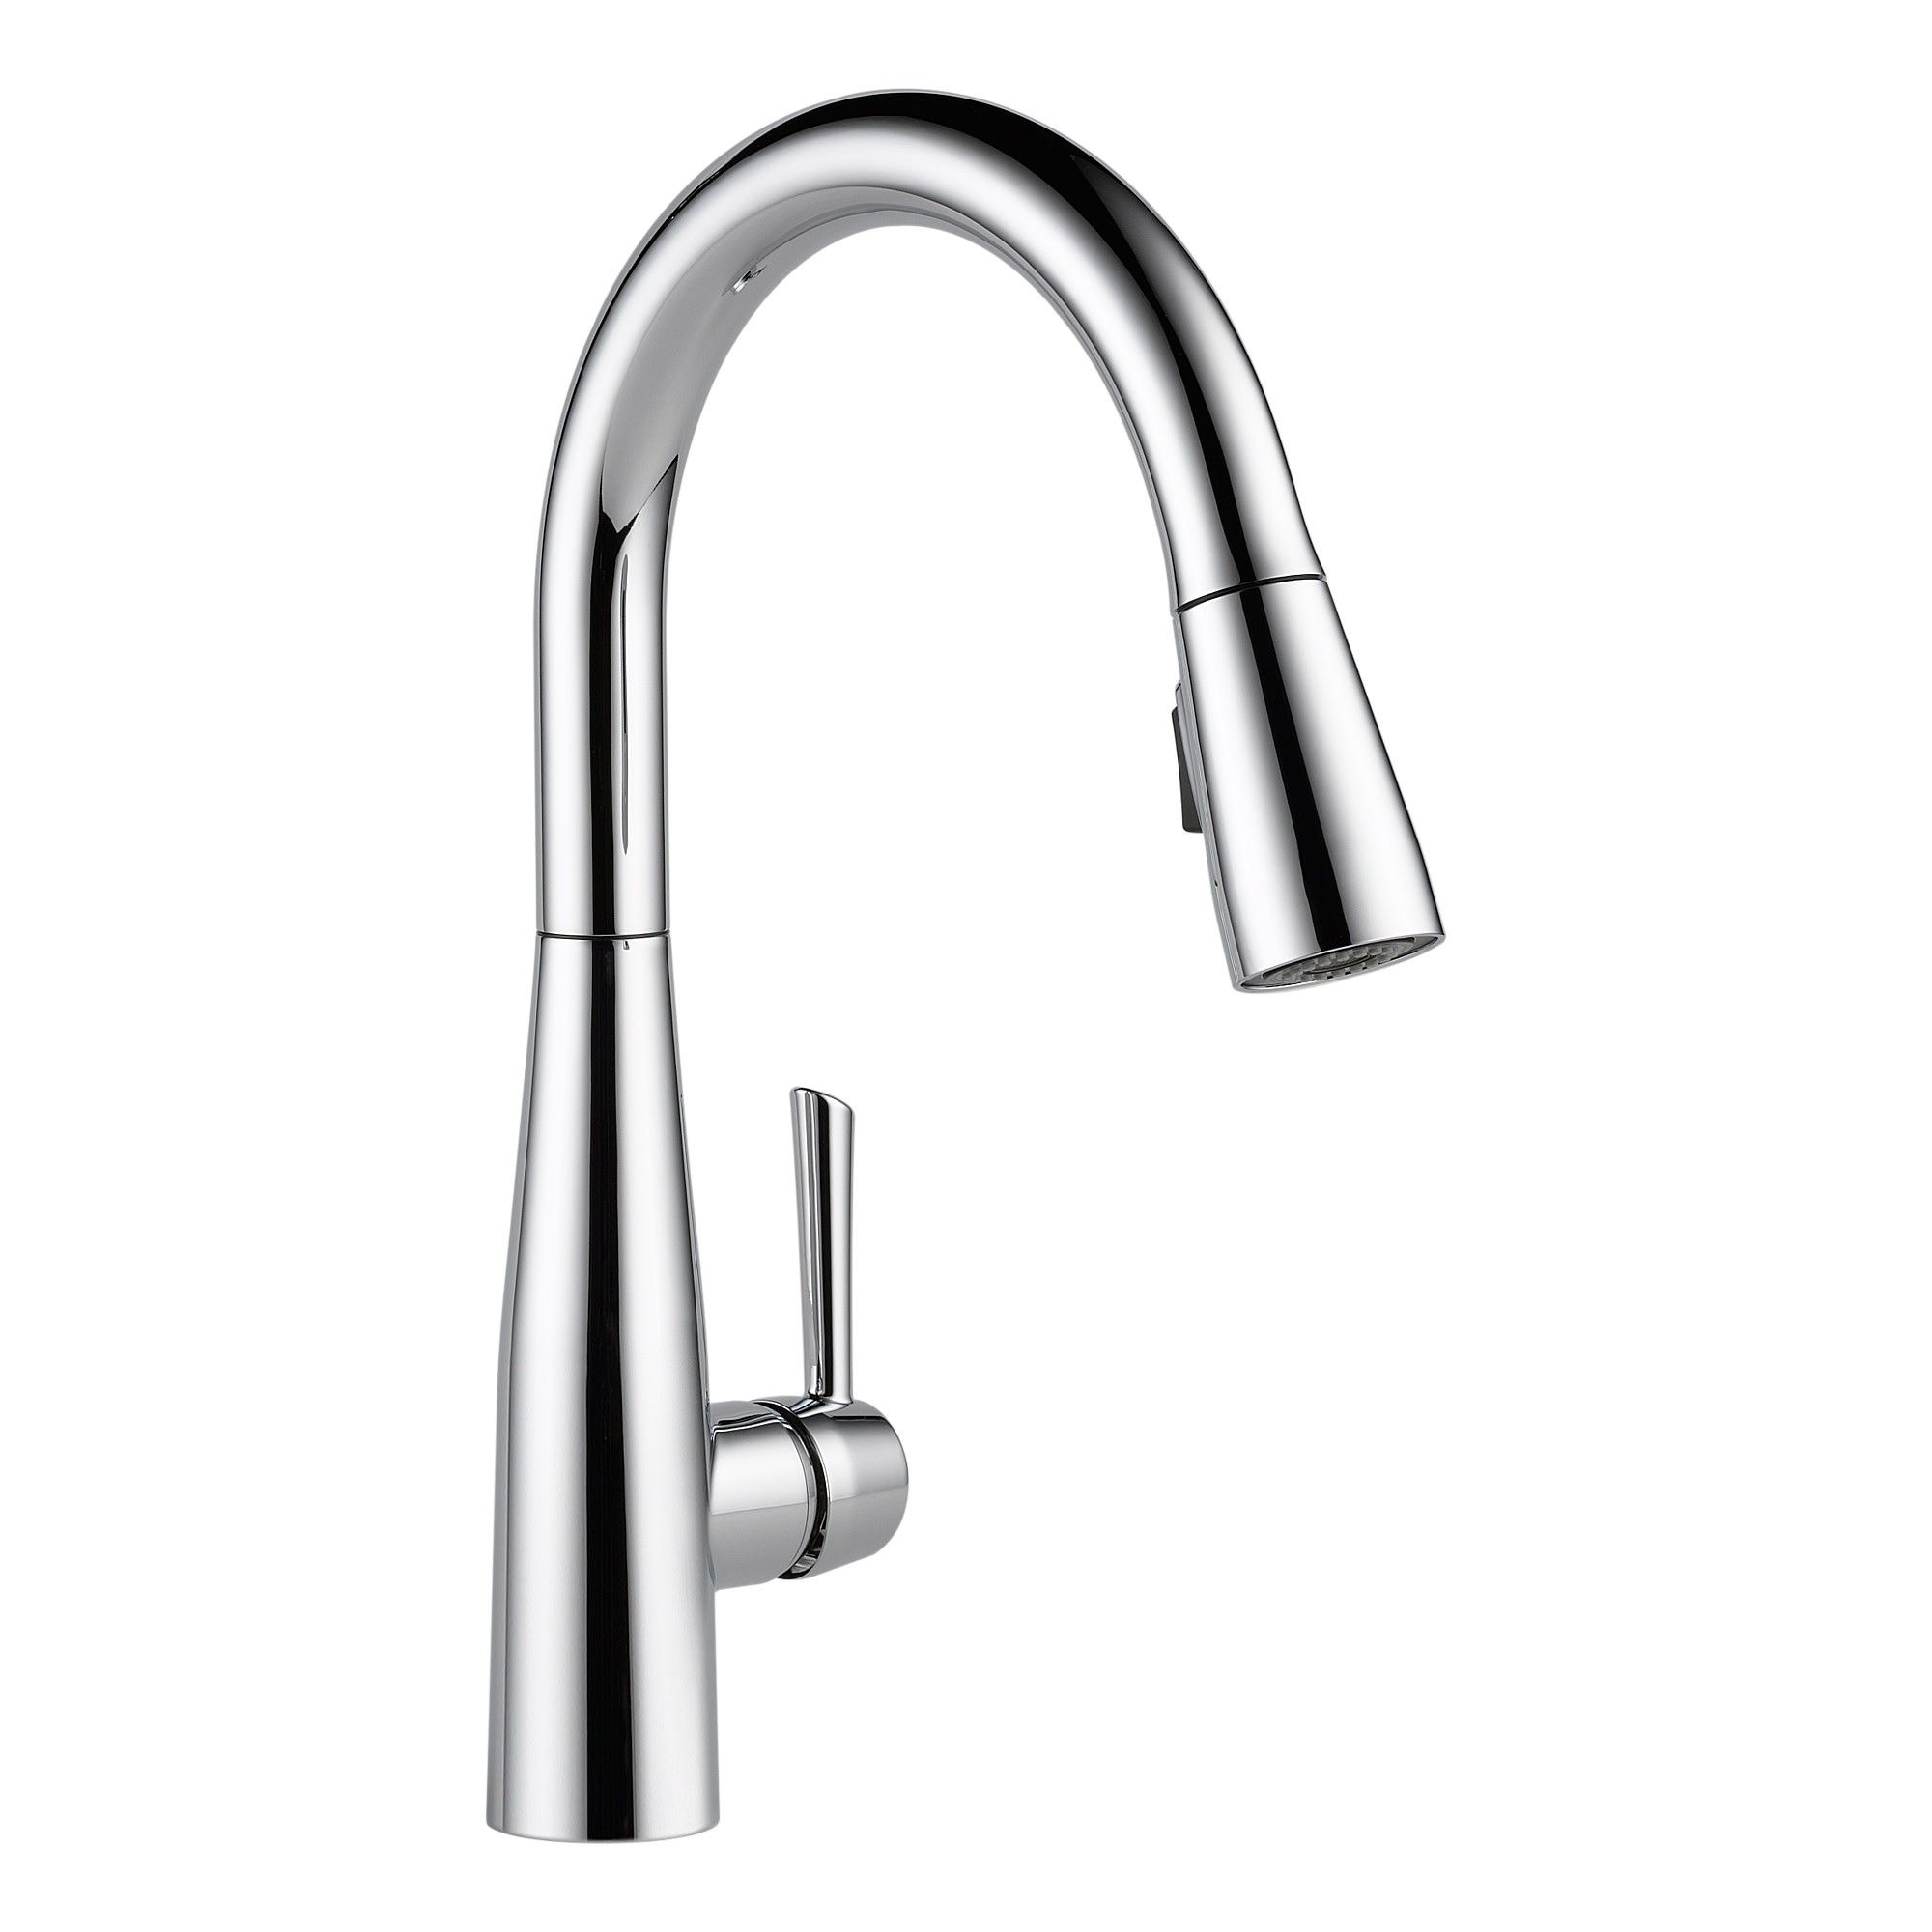 Delta Faucet 9113 Dst Essa Pull Down Kitchen Faucet With Magnetic Docking Spray Head Chrome Grey Delta Faucets Faucet Brass Faucet